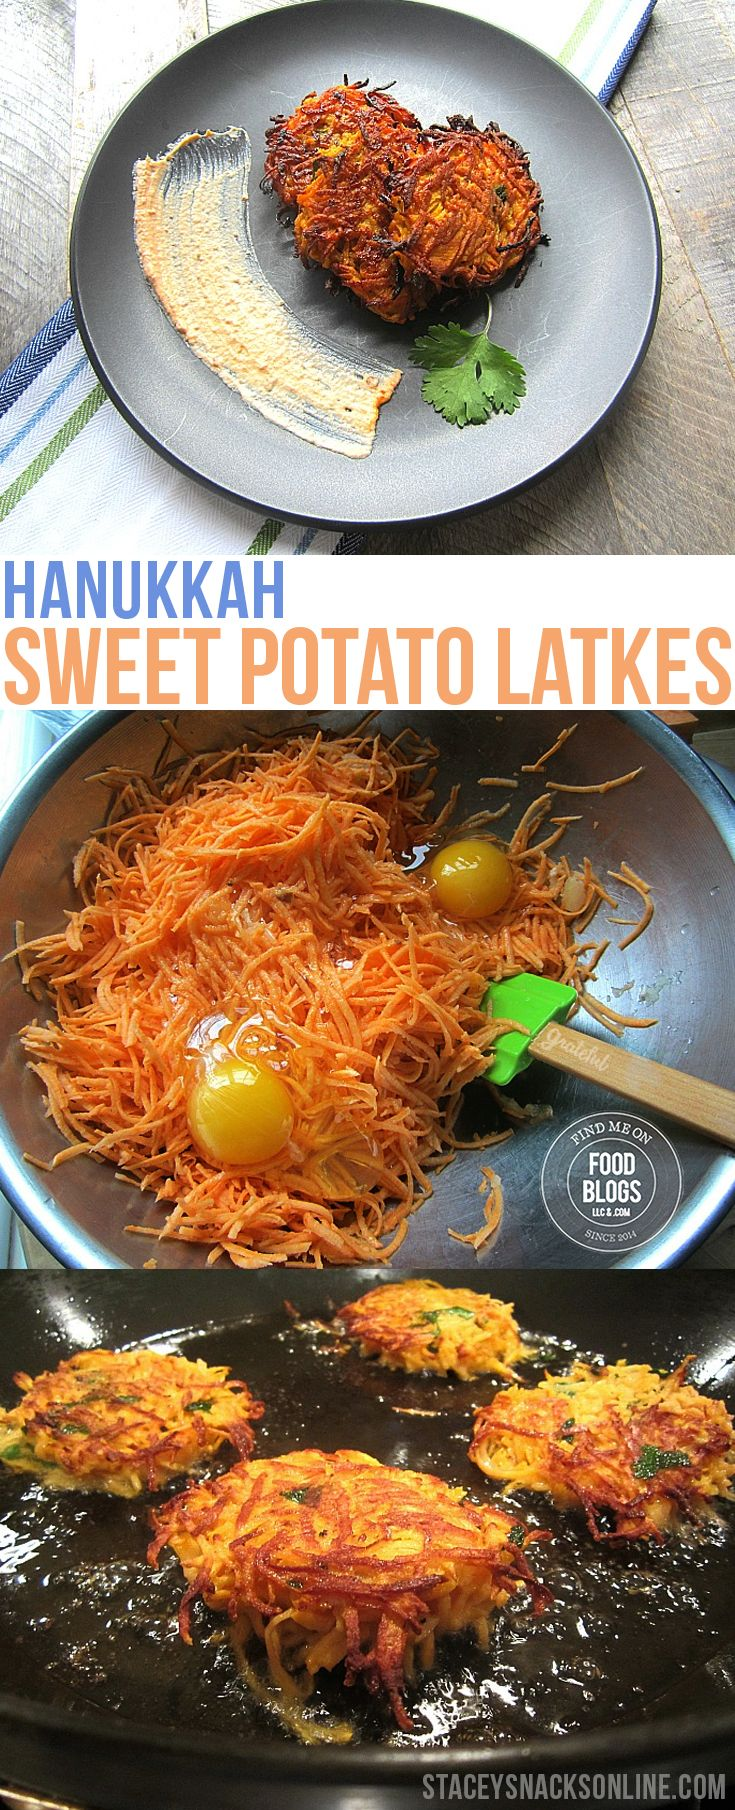 Hanukkah Sweet Potato Latkes Recipe @FoodBlogs.com Celebrate Hanukkah the right way!